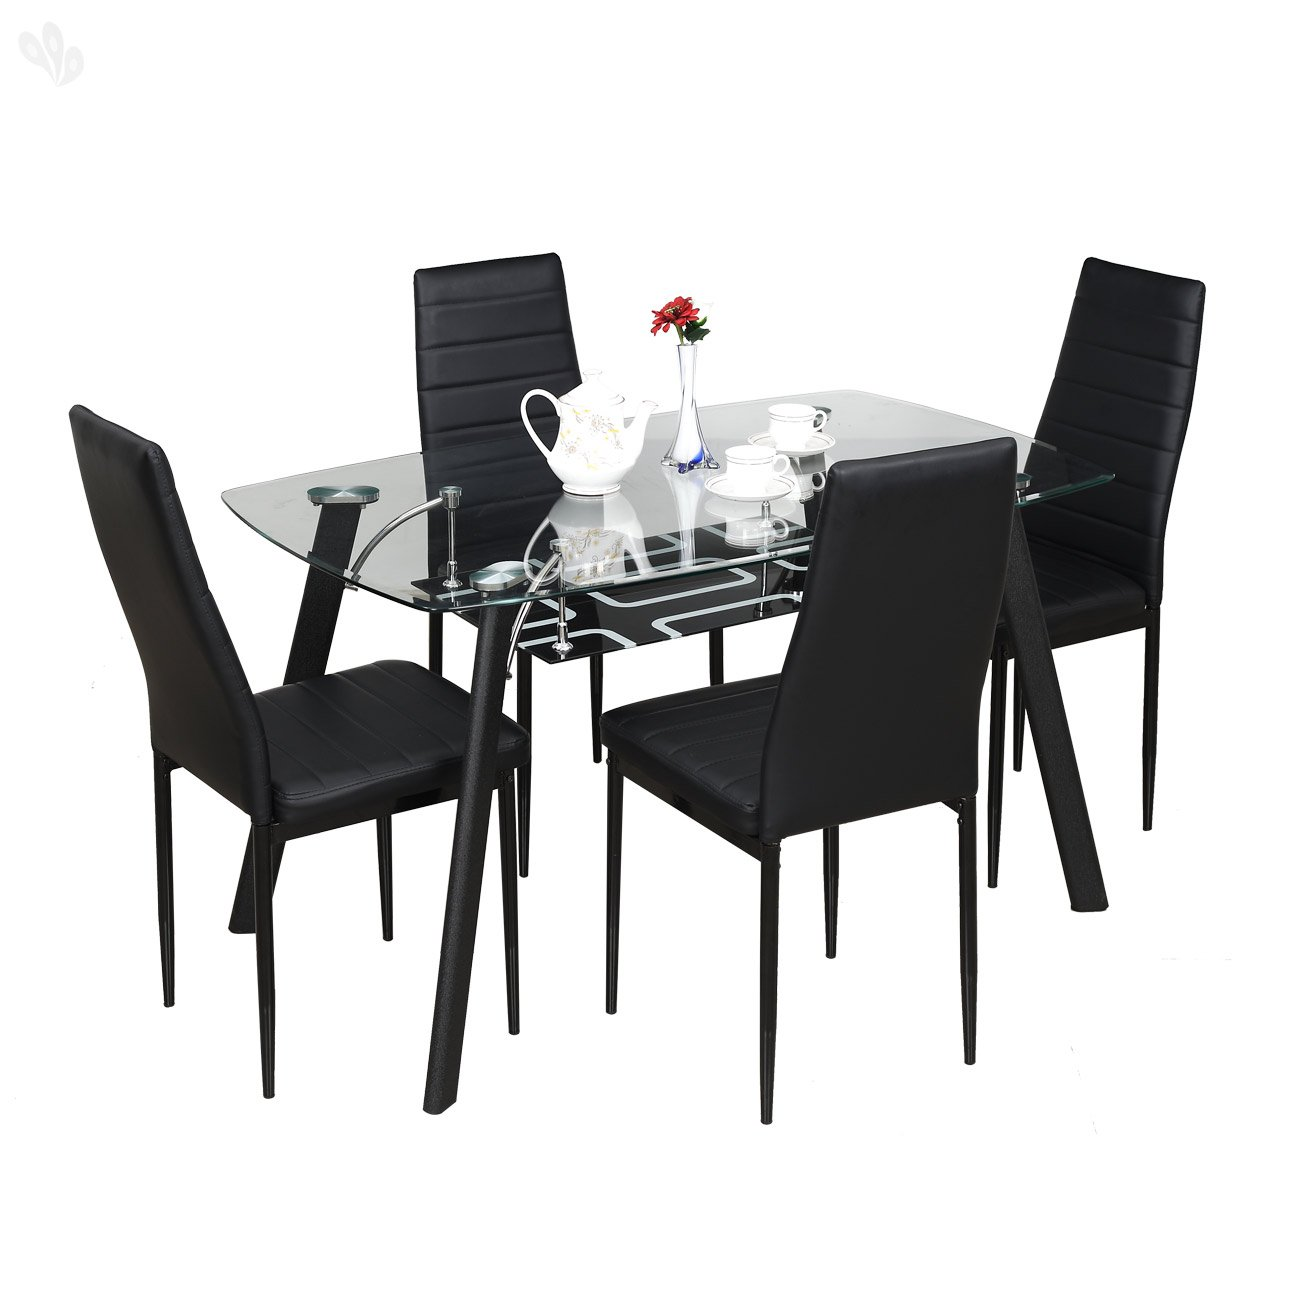 Royal oak milan four seater dining table set black for Table th right